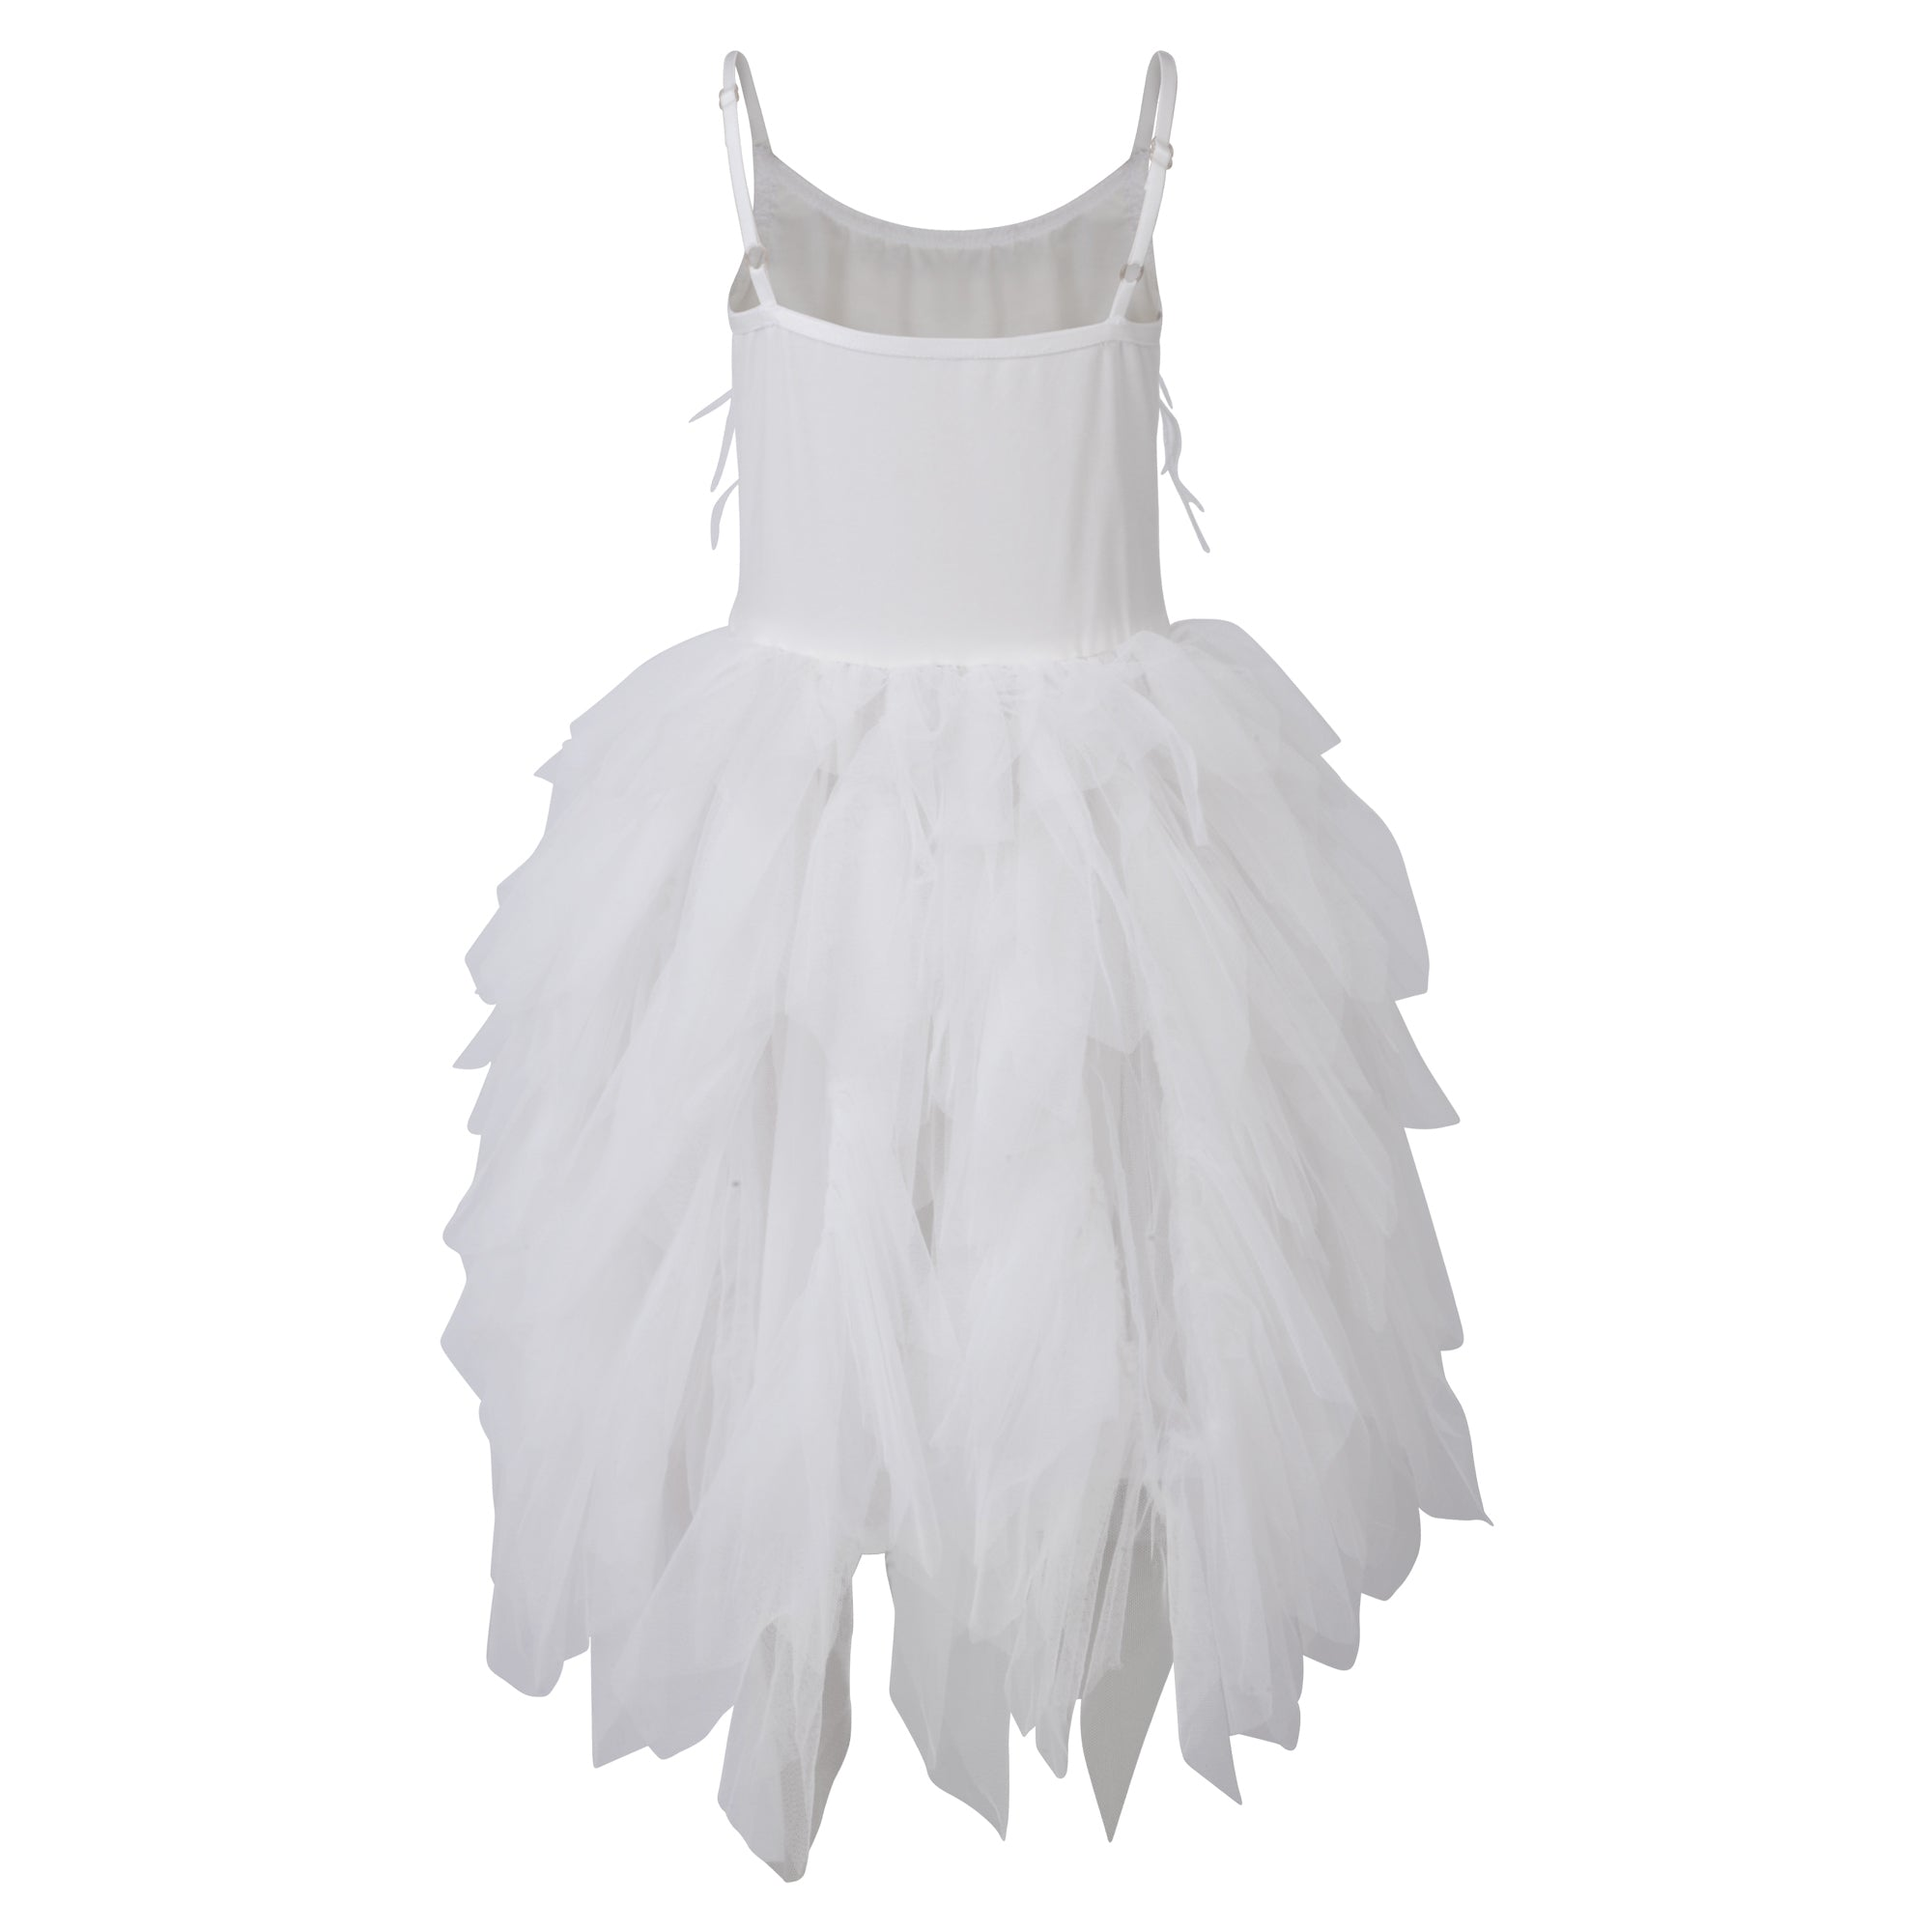 Girls white Frilly and Feathers Dress